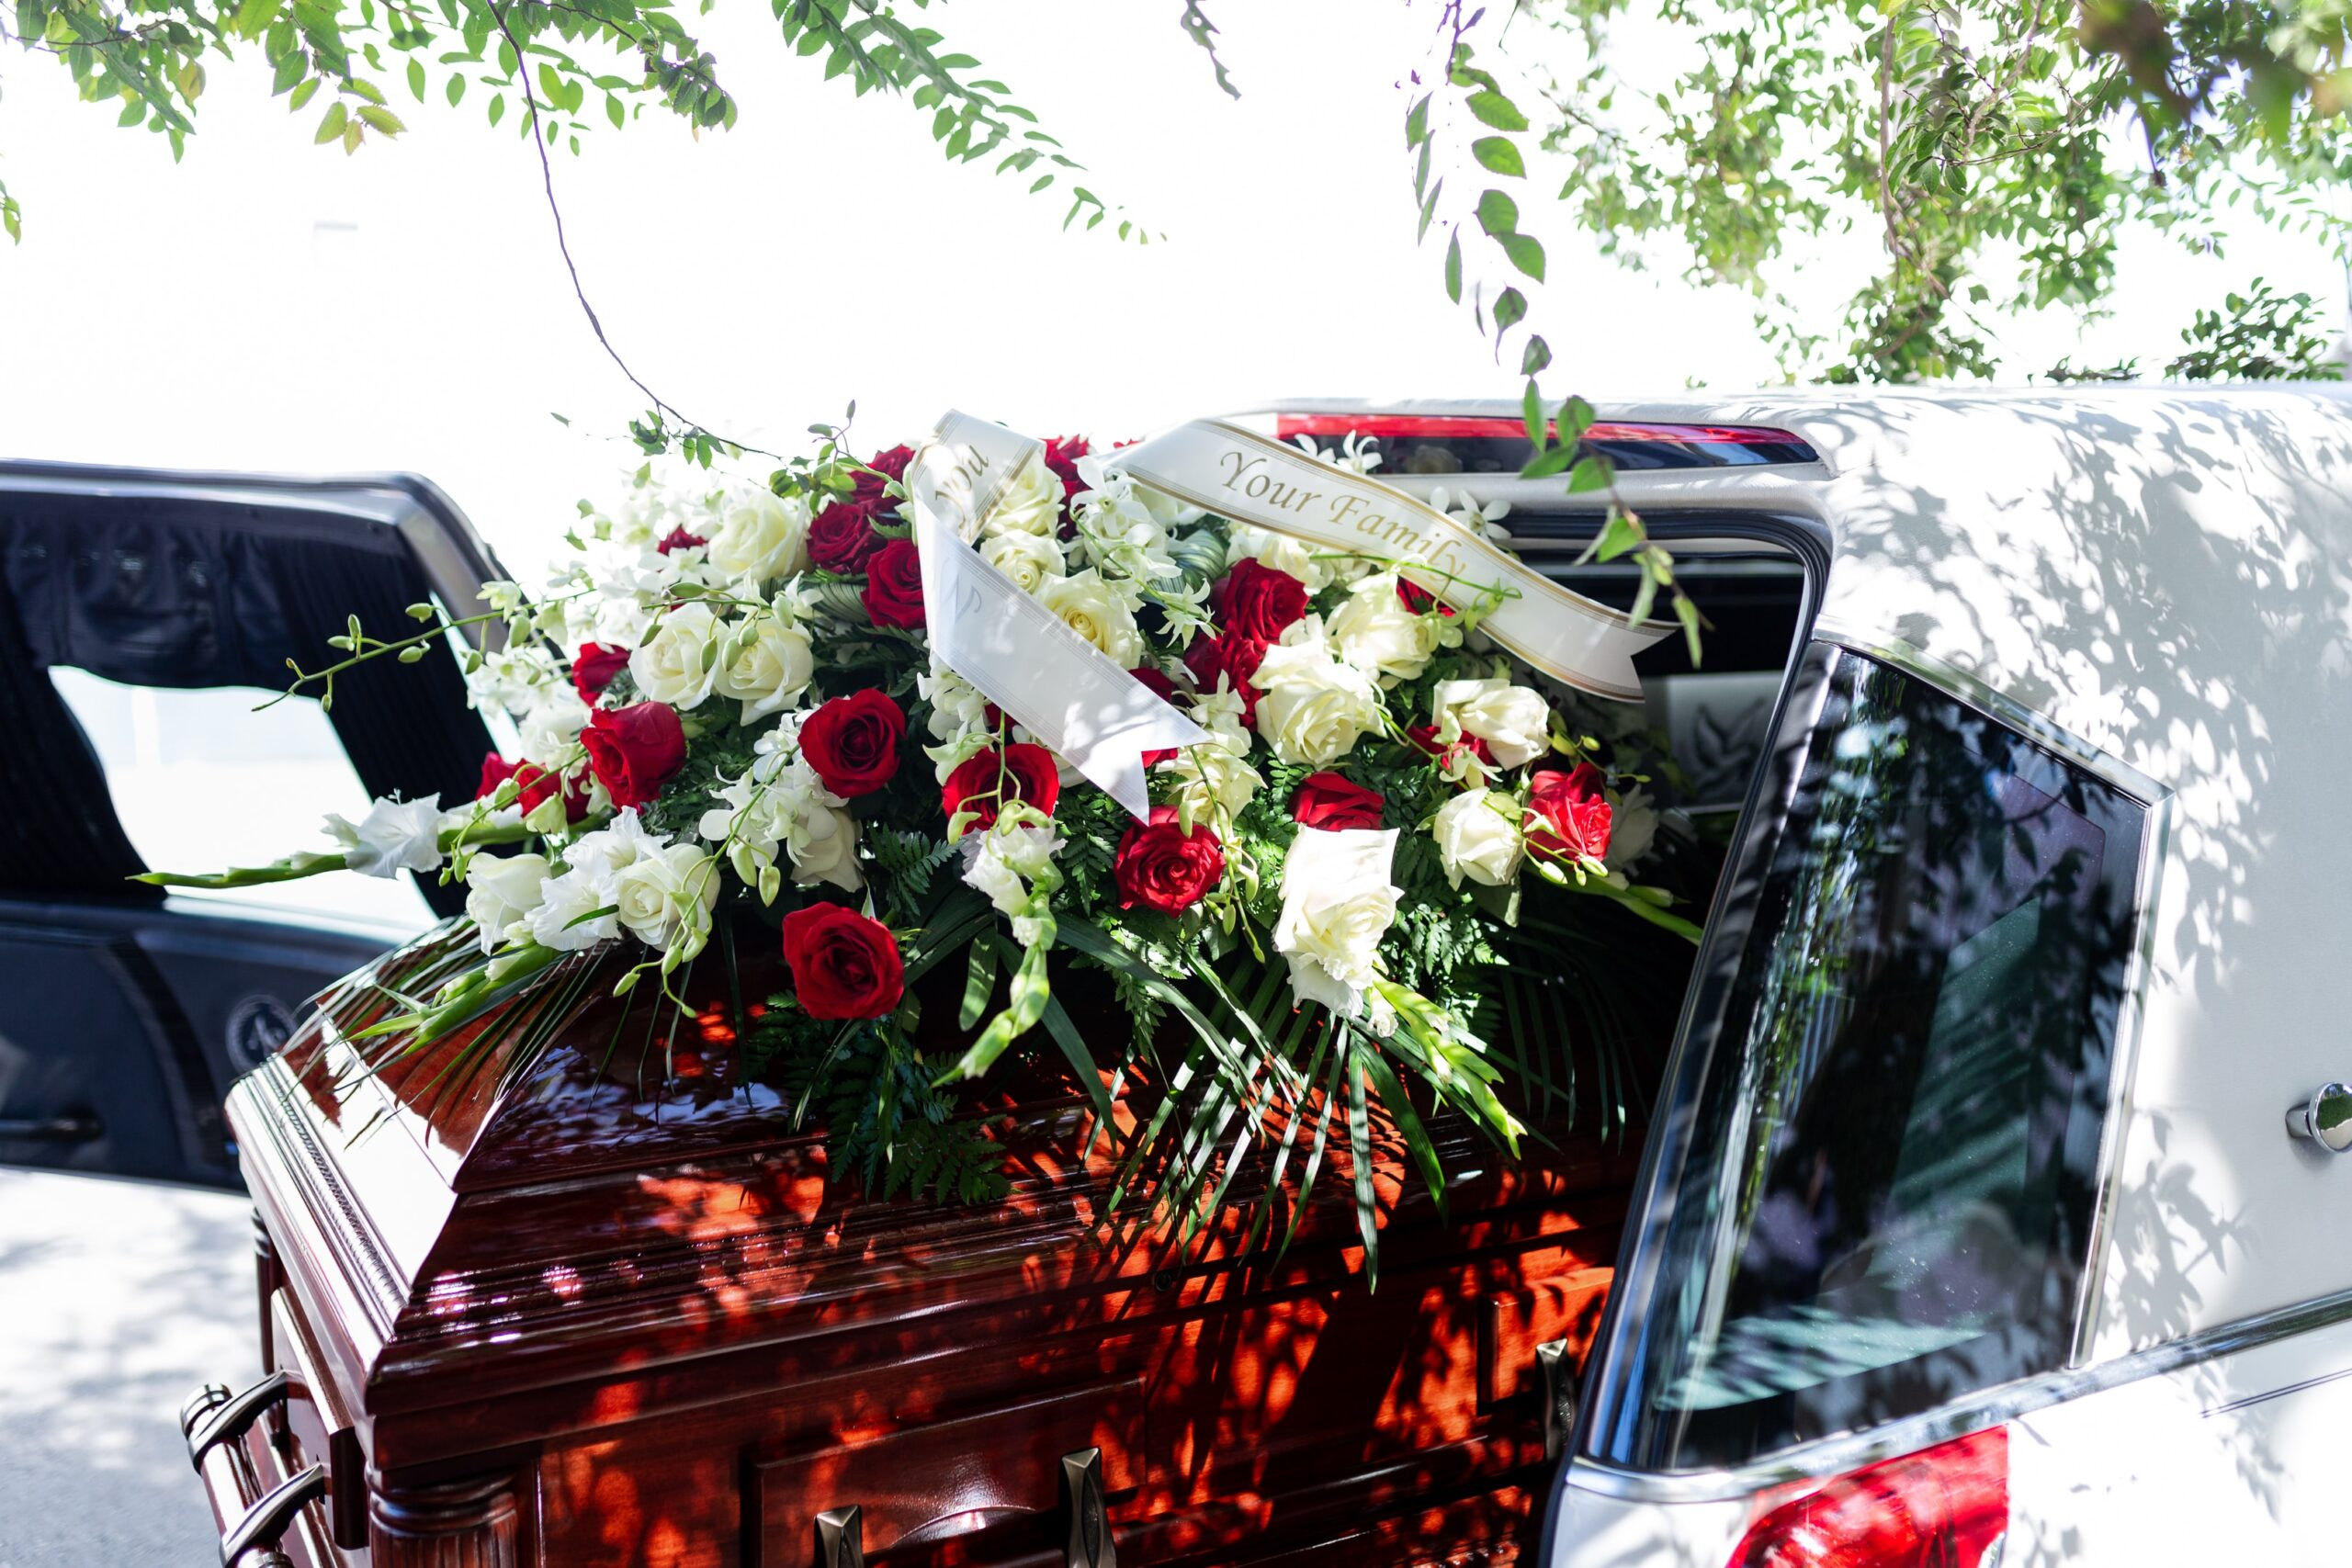 Affordable St. Louis funeral and cremation services